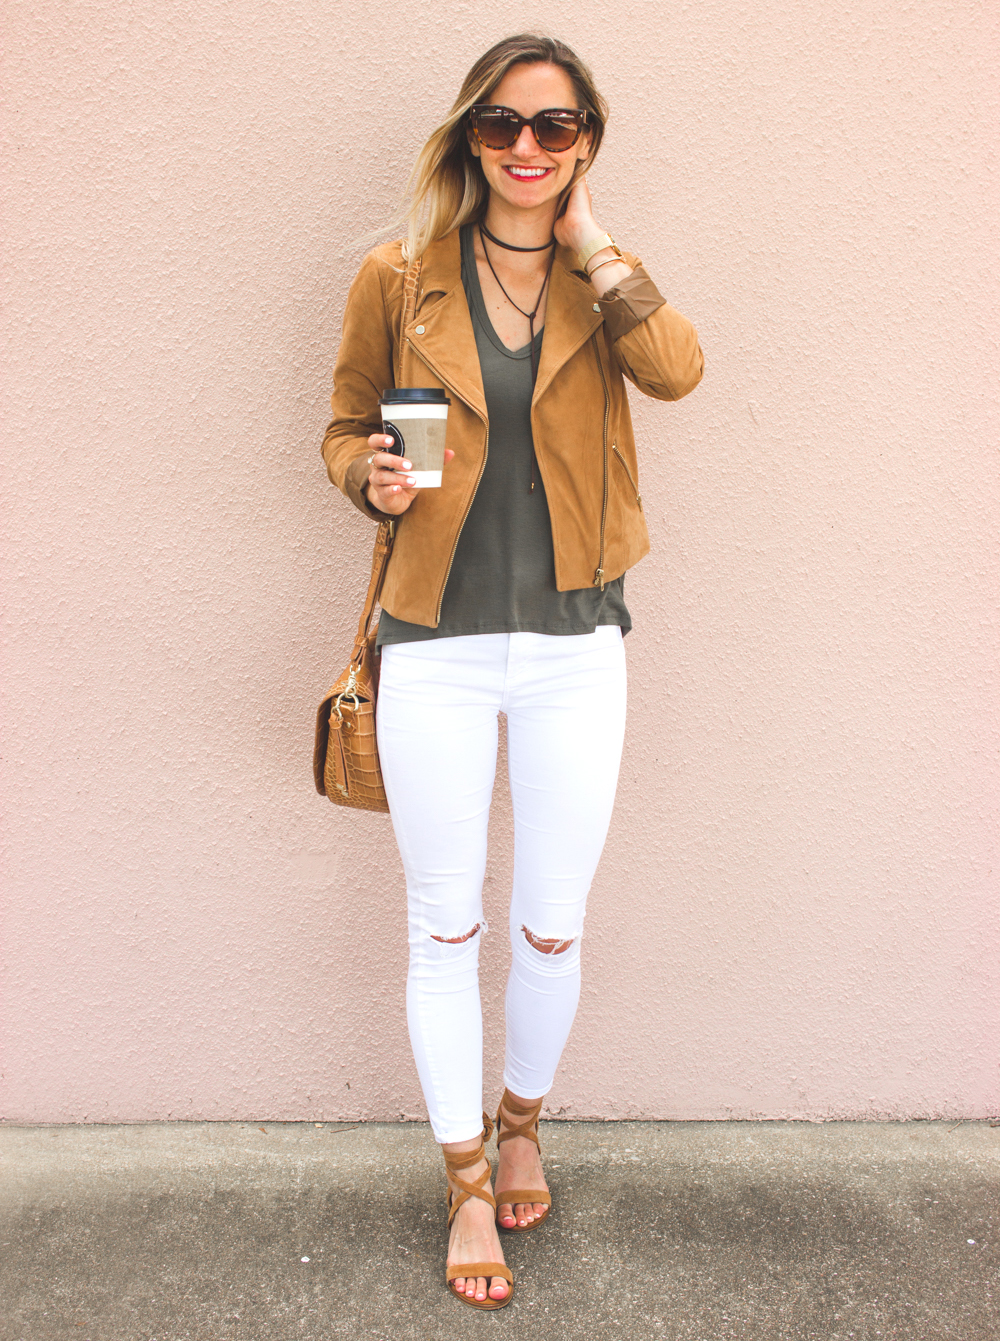 livvyland-blog-olivia-watson-boho-ootd-nordstrom-anniversary-sale-must-haves-what-to-buy-suede-tan-jacket-fall-summer-outfit-cluse-gold-watch-1